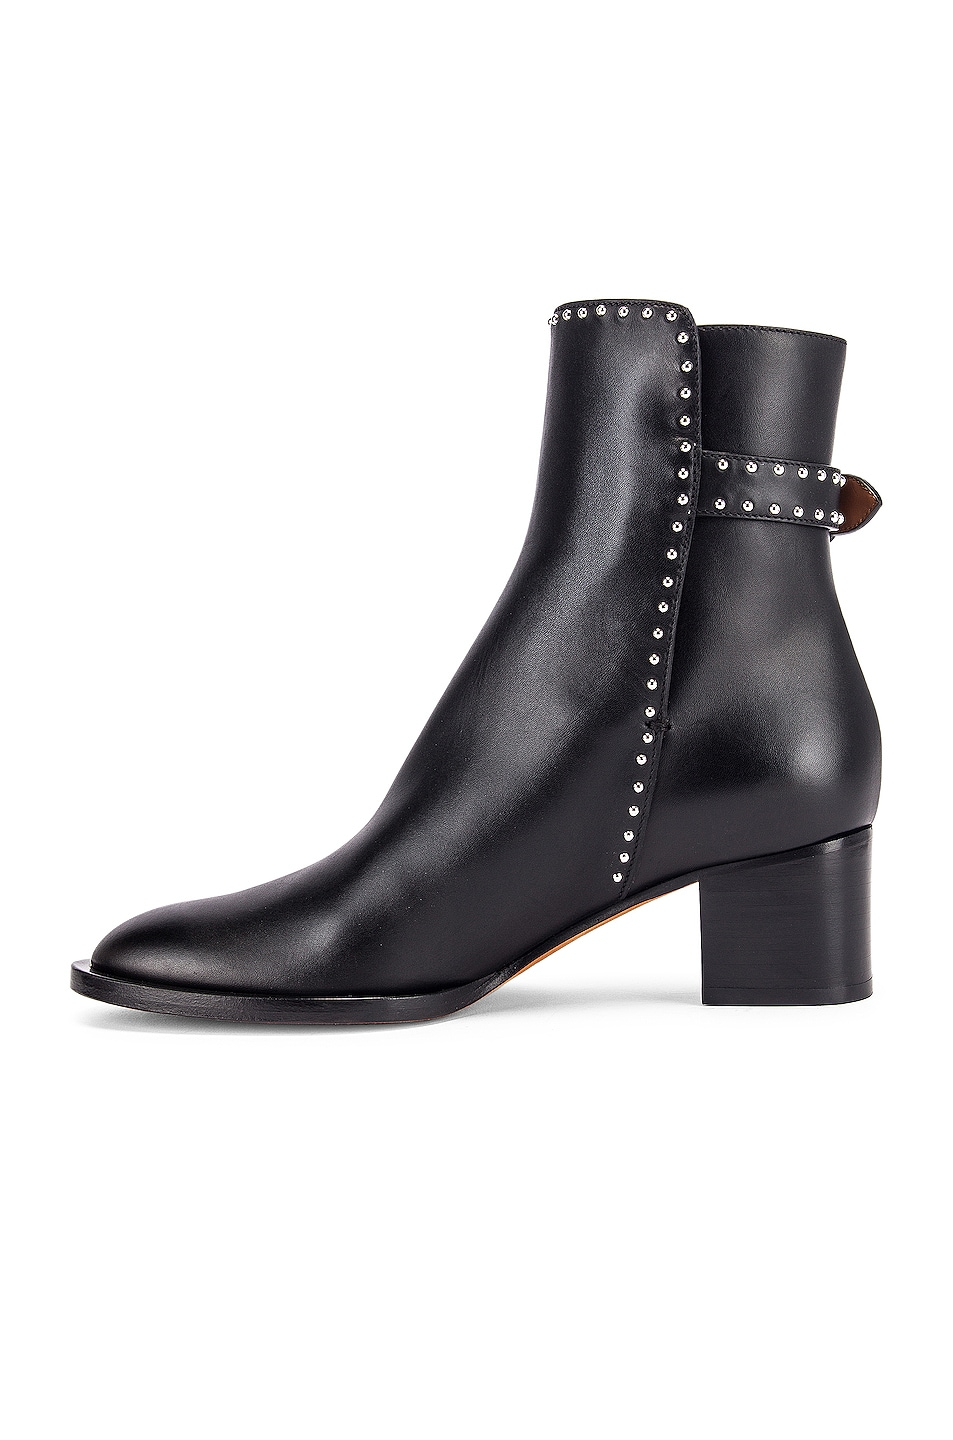 Image 5 of Givenchy Elegant Studs Ankle Boots in Black